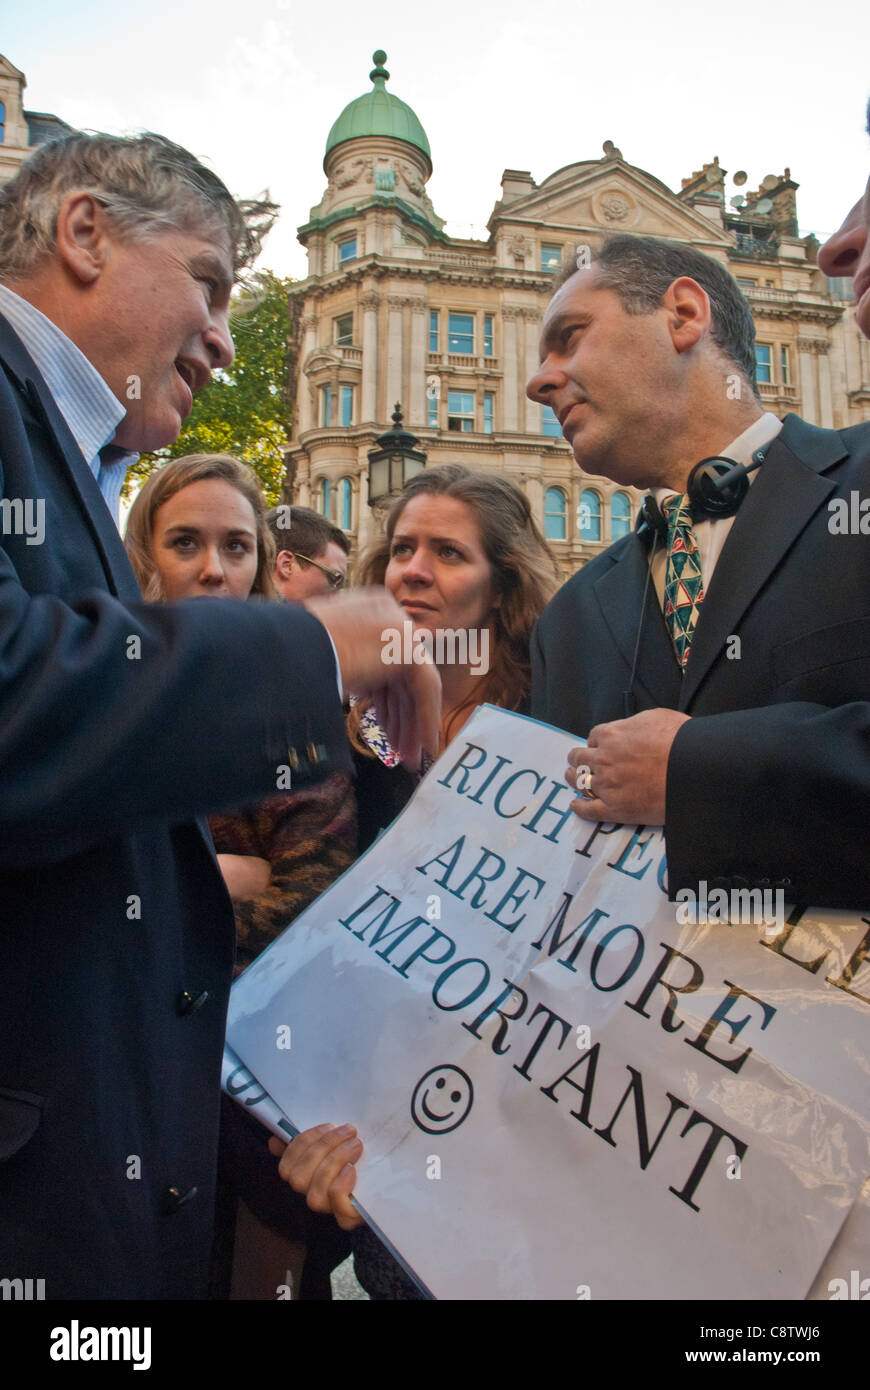 Occupy London. Two middle aged men in suits (bankers) have a serious discussion over a poster 'Rich people are - Stock Image